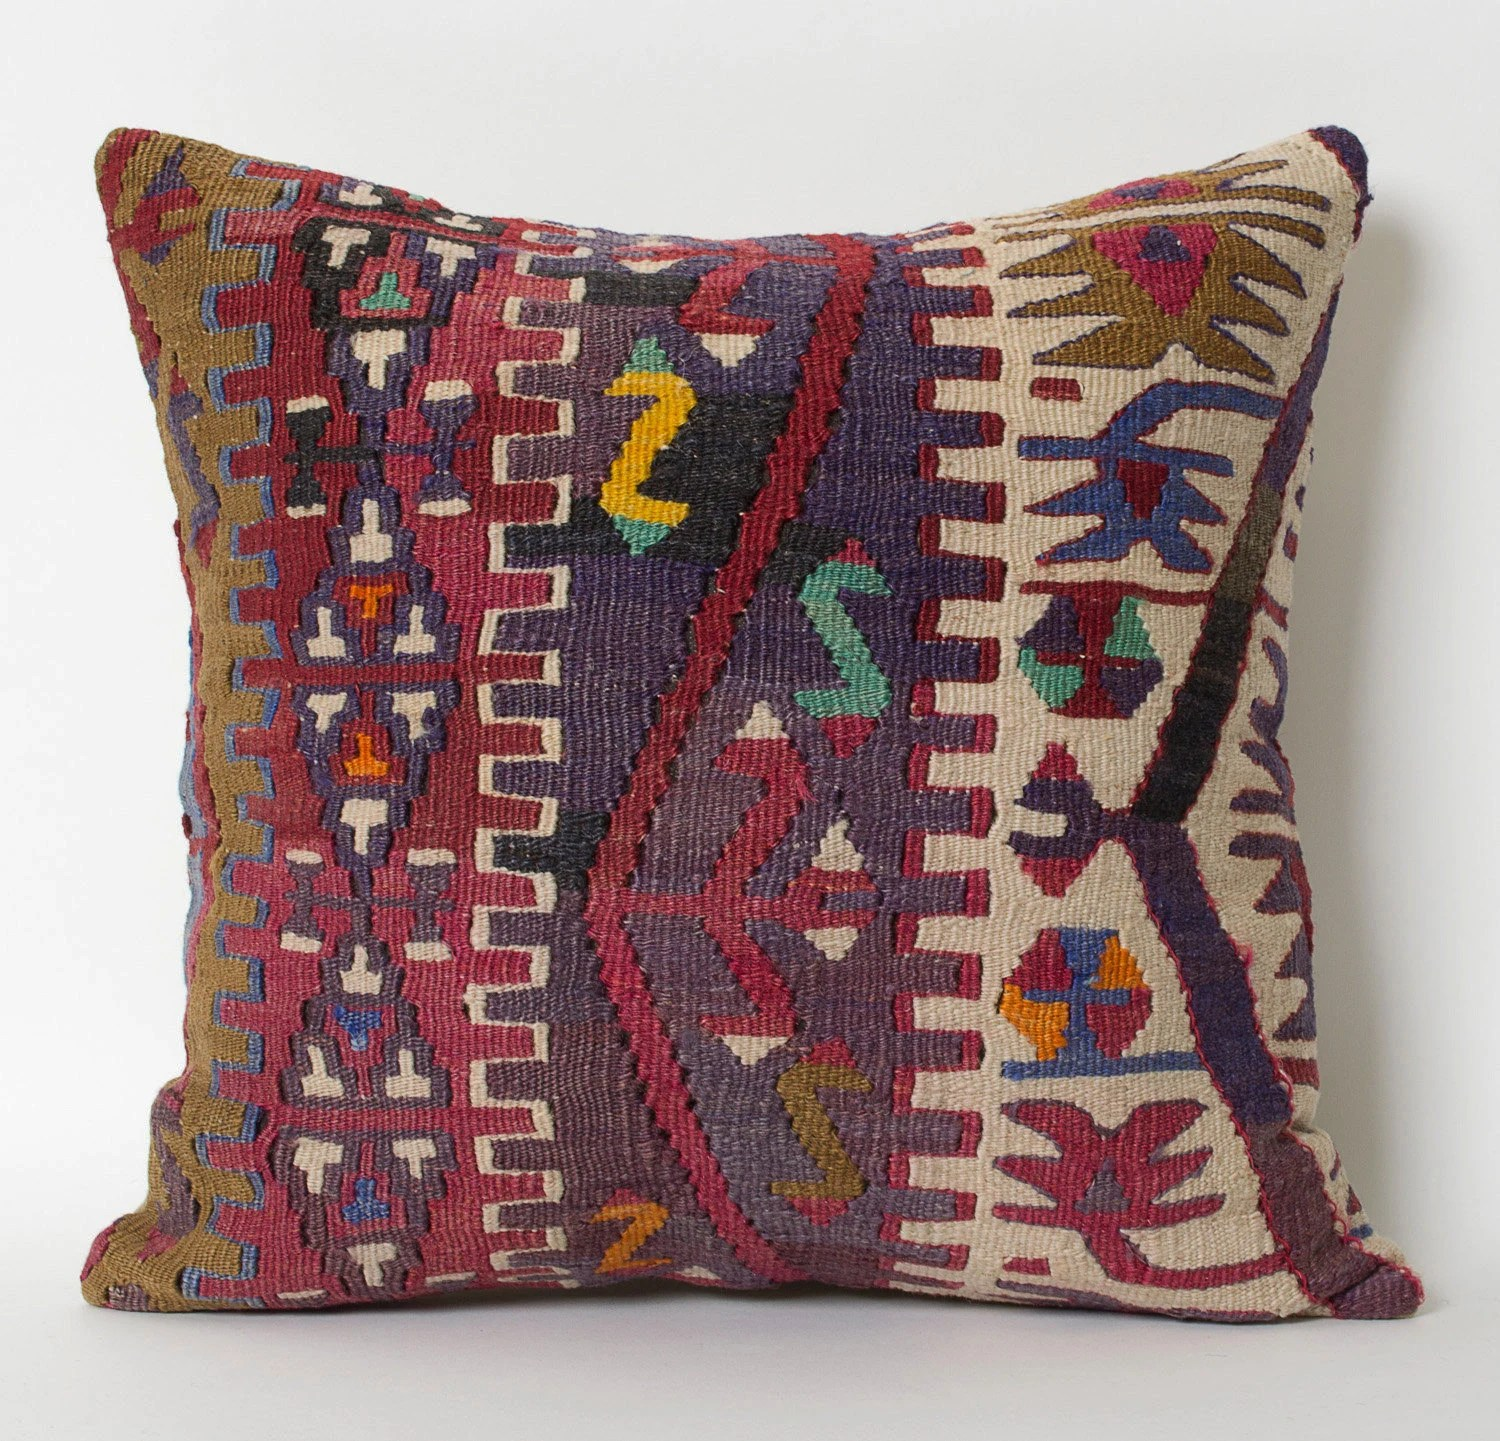 Boho Cushions Australia Kilim Pillows Boho Chic Pillowcases Handmade Farmhouse Etsy